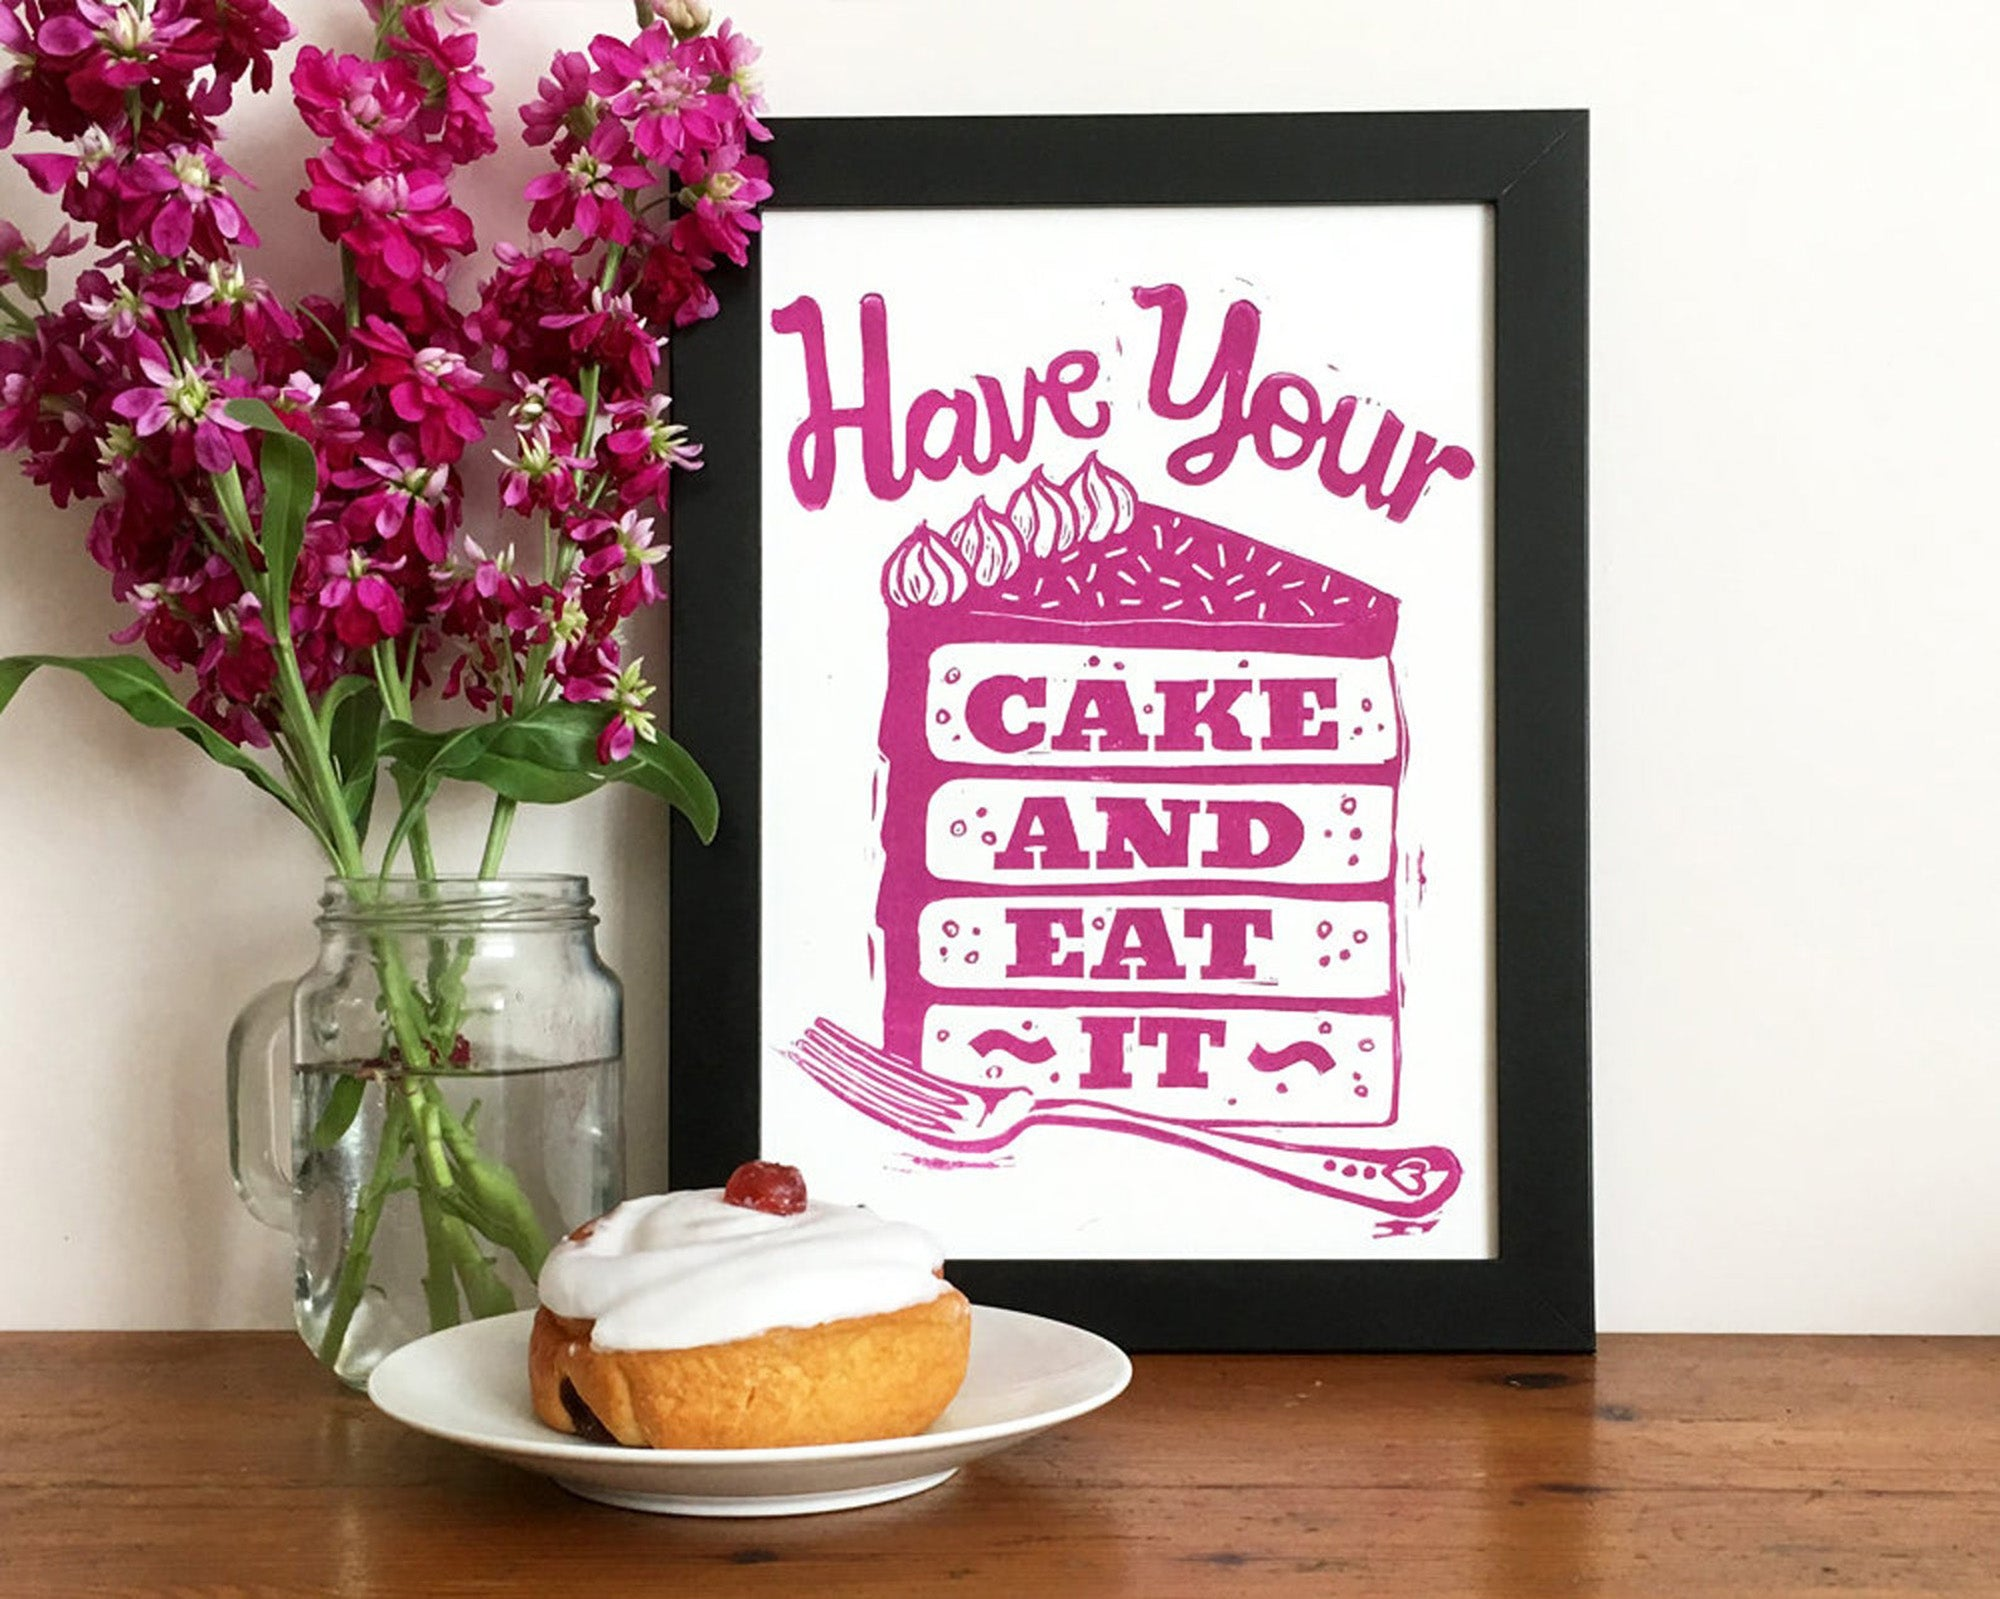 Have Your Cake and Eat It print